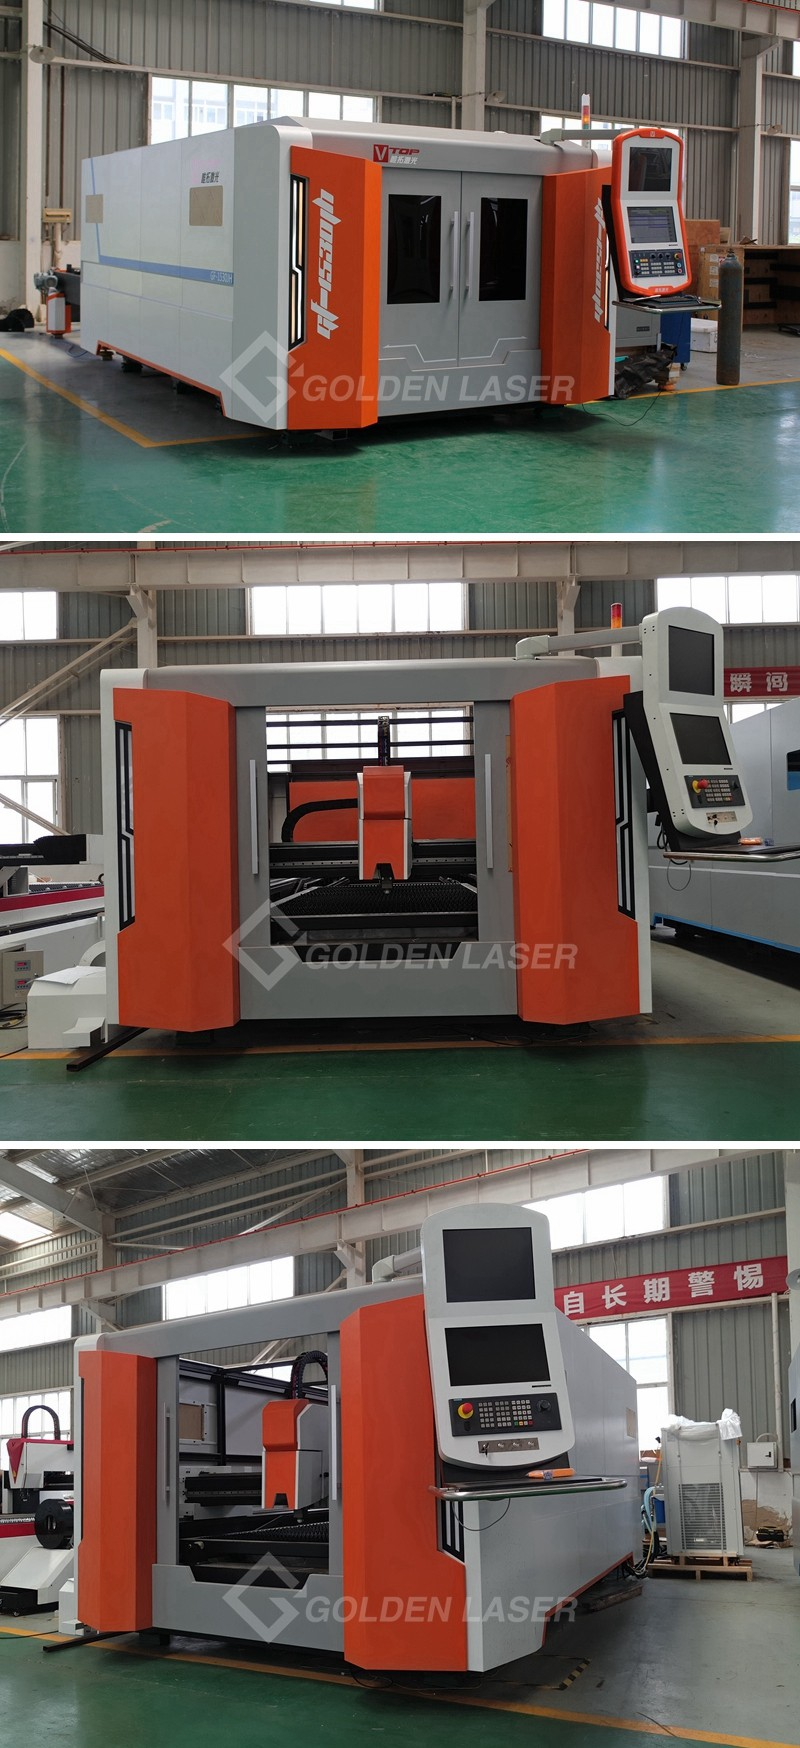 stainless steel sheet / plate fiber laser cutting machine 3000W up to 10mm